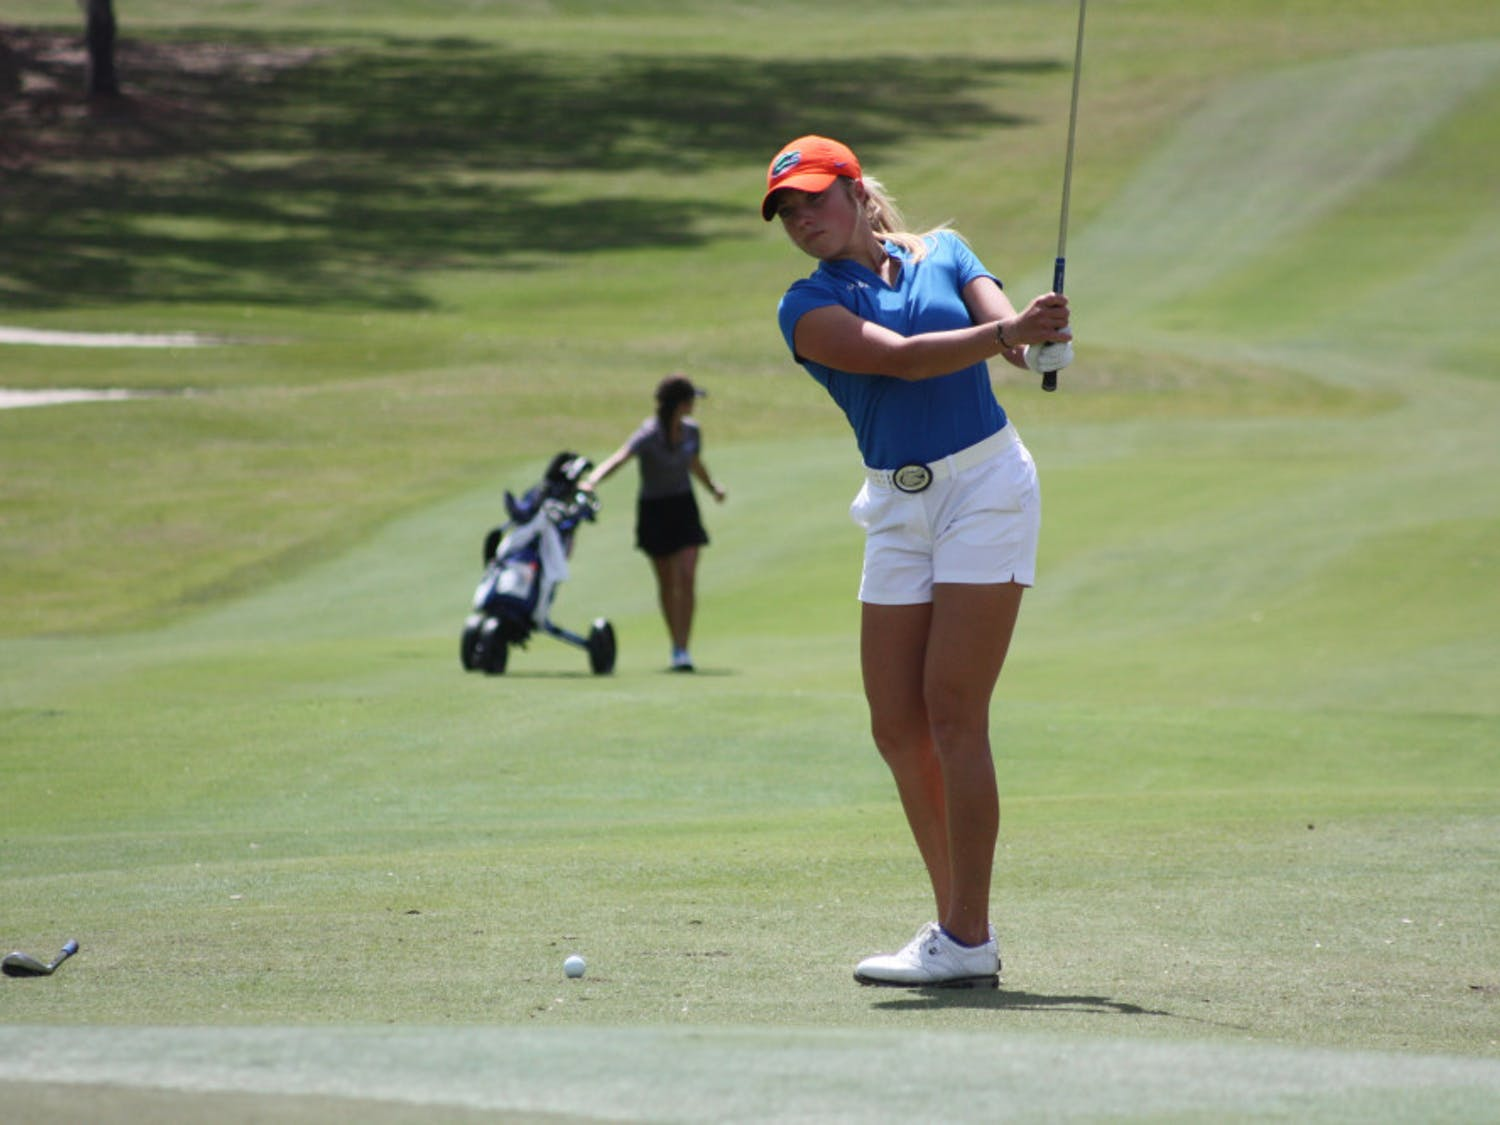 Junior Sierra Brooks (pictured) finished second on the team at the Windy City Classic and 14th overall at 2 over. She and Marta Perez (-2) led the UF women to a fourth place finish at the event.